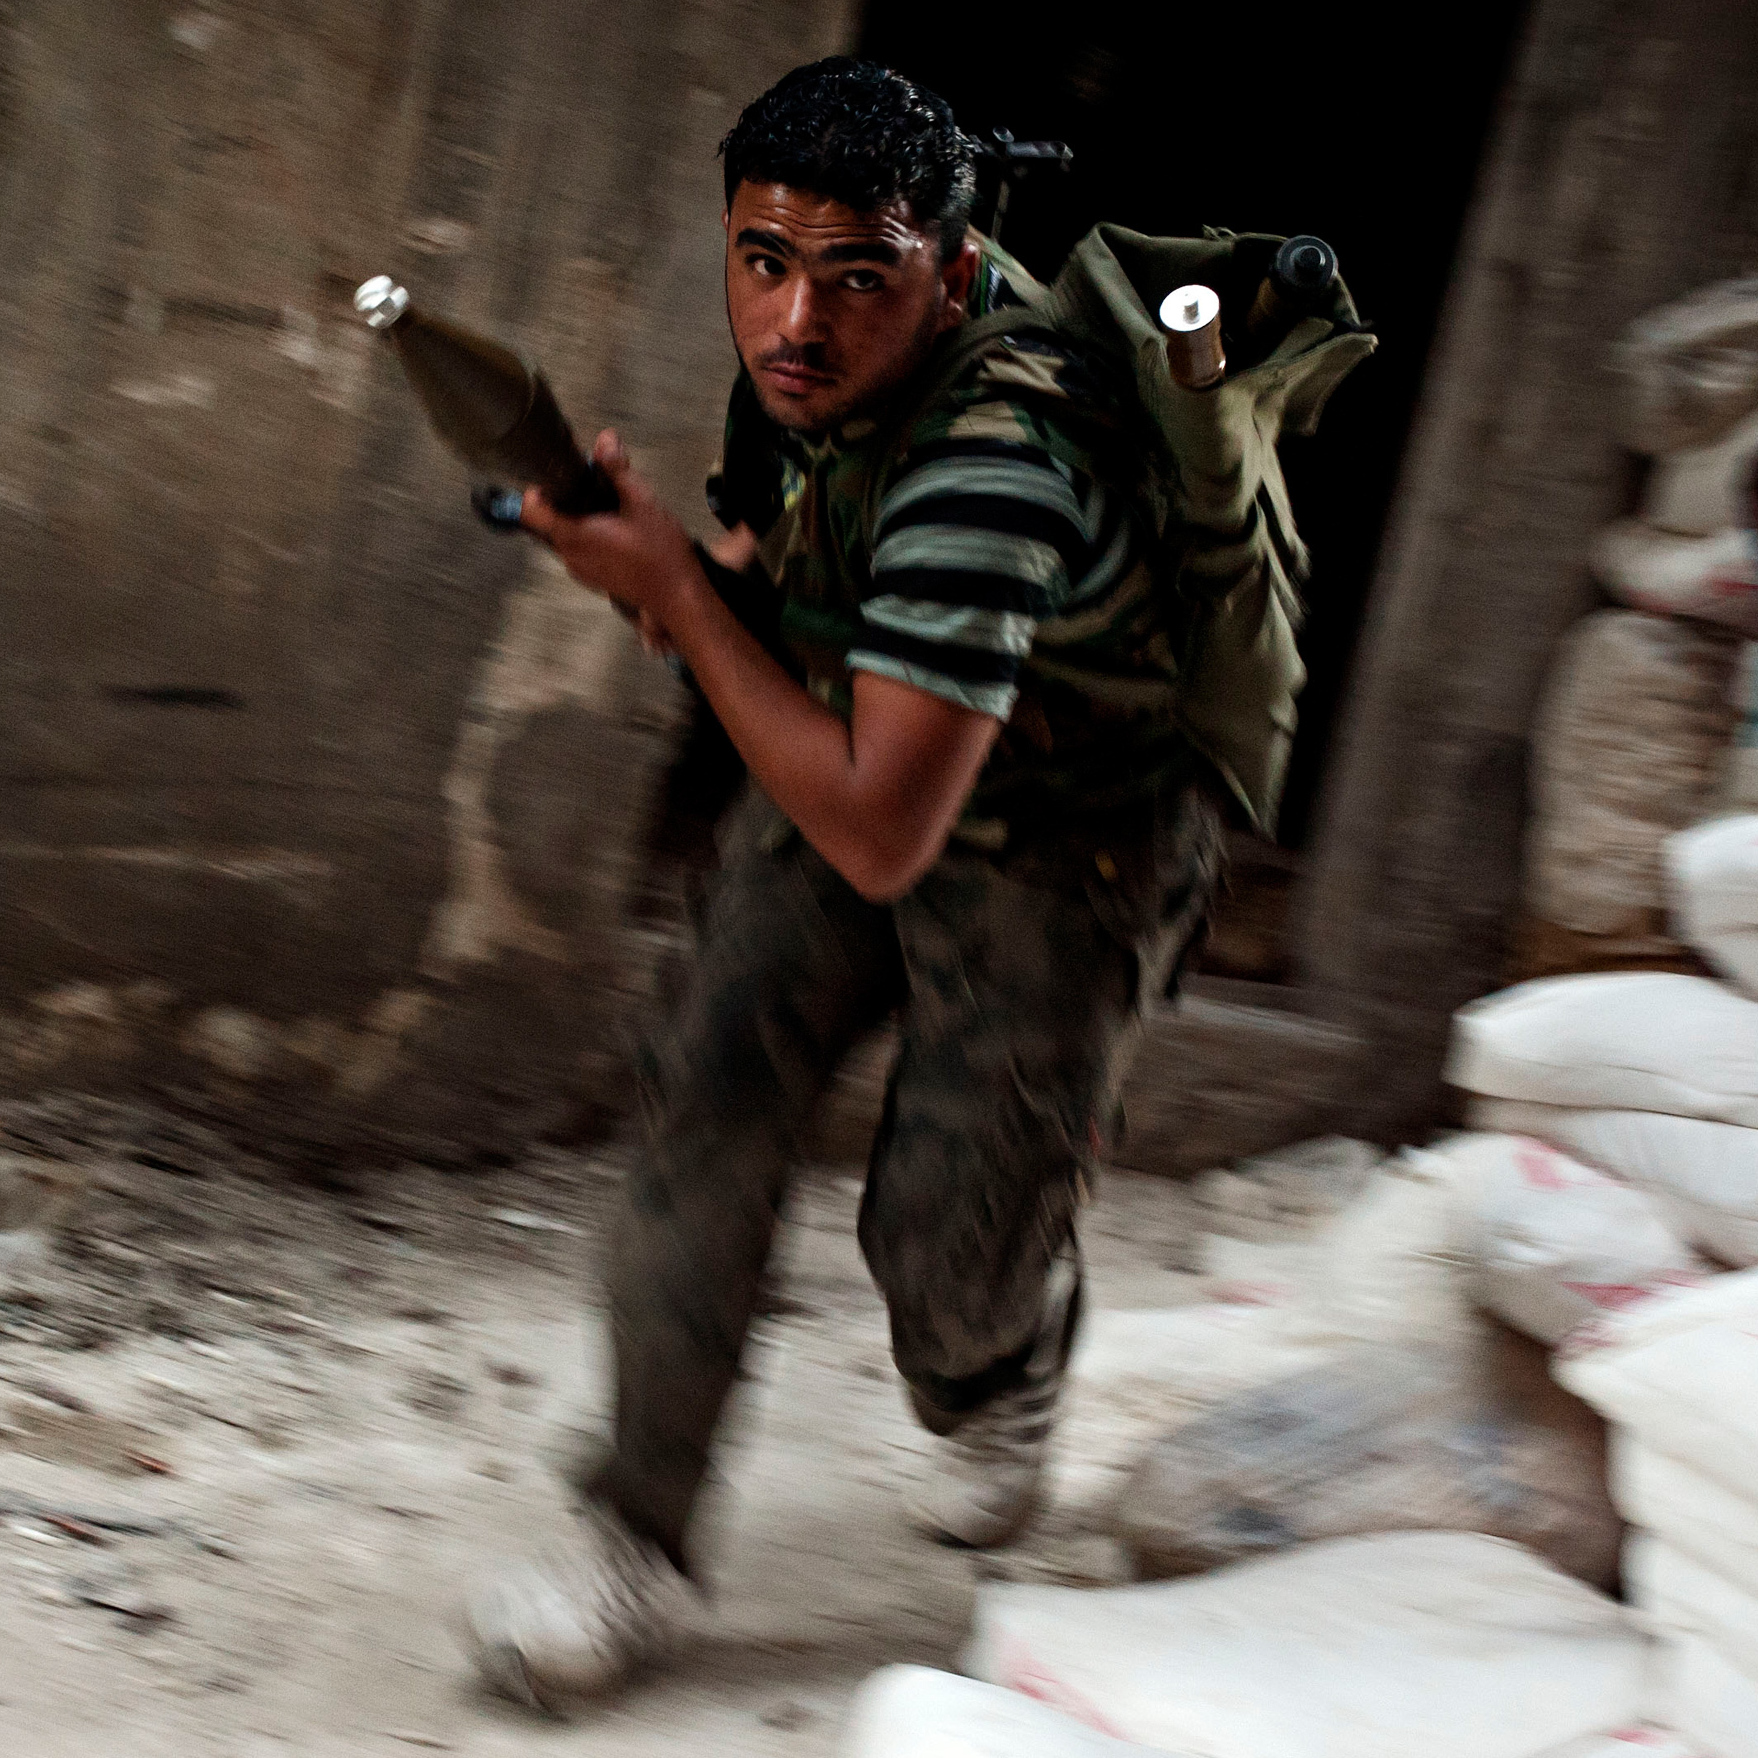 A Free Syrian Army fighter dodges sniper fire in the Salah Al Din neighborhood of Aleppo, Syria, on Aug. 22.